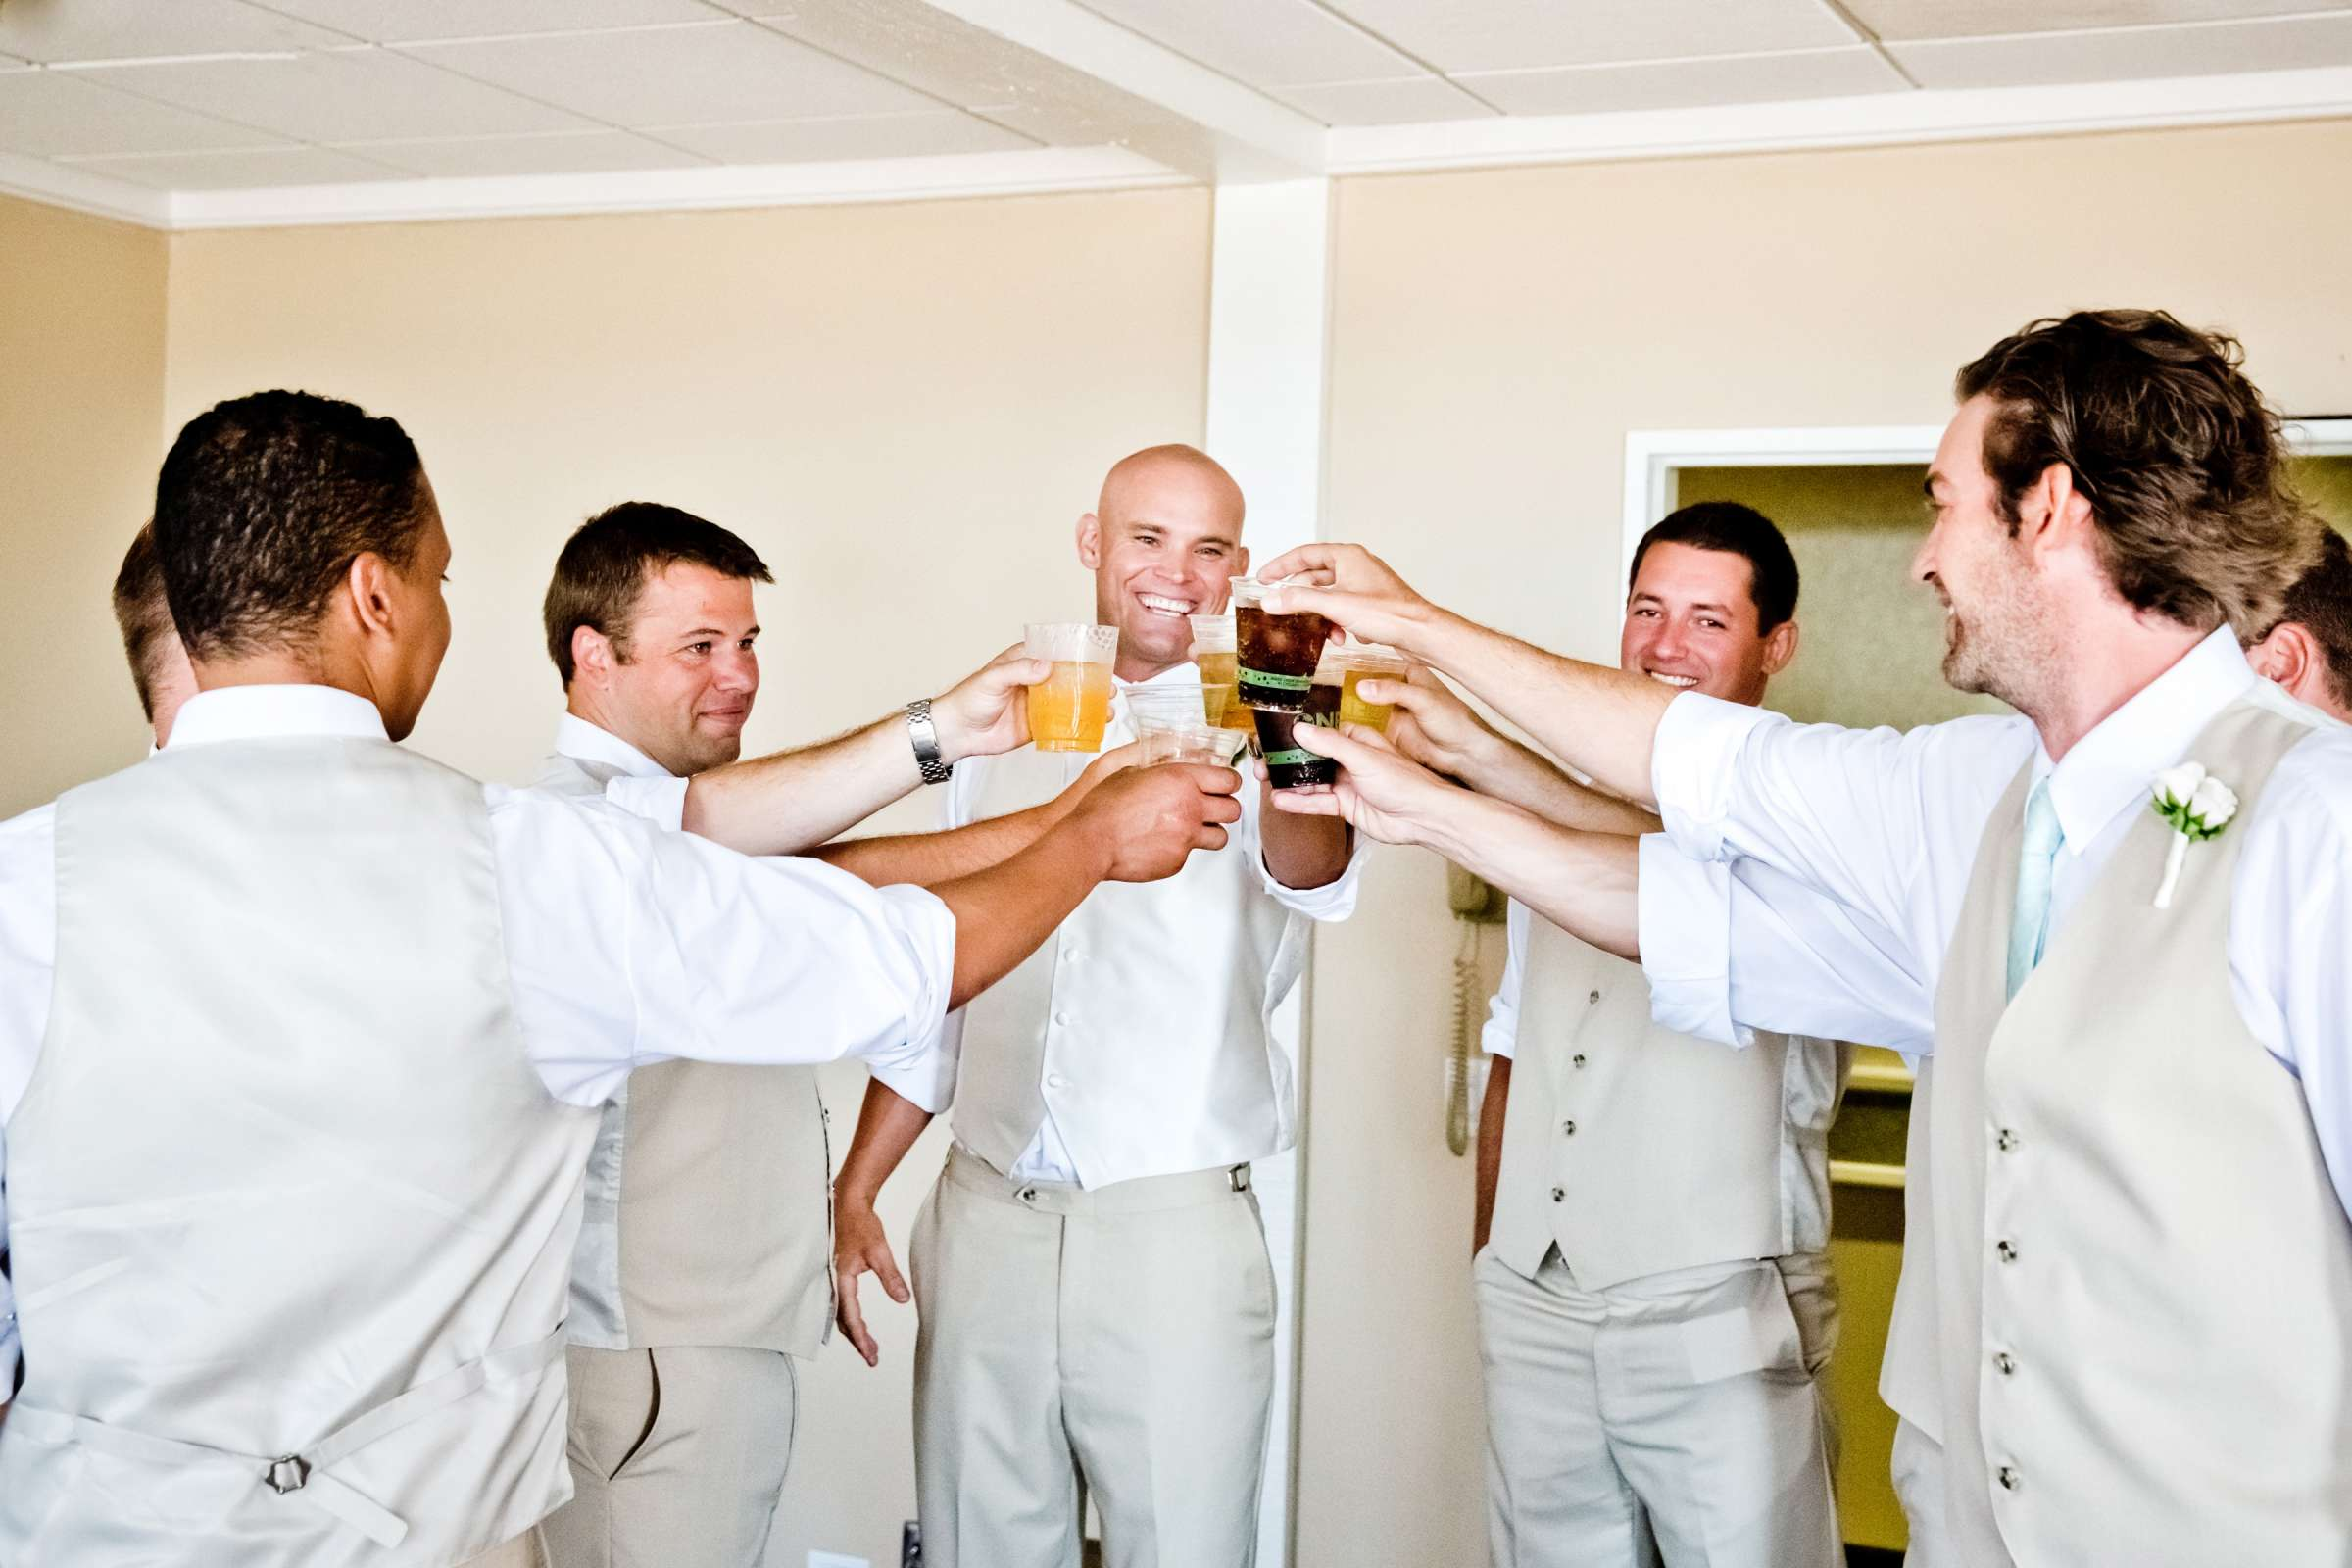 La Jolla Shores Hotel Wedding coordinated by I Do Weddings, Stefanie and Craig Wedding Photo #373304 by True Photography